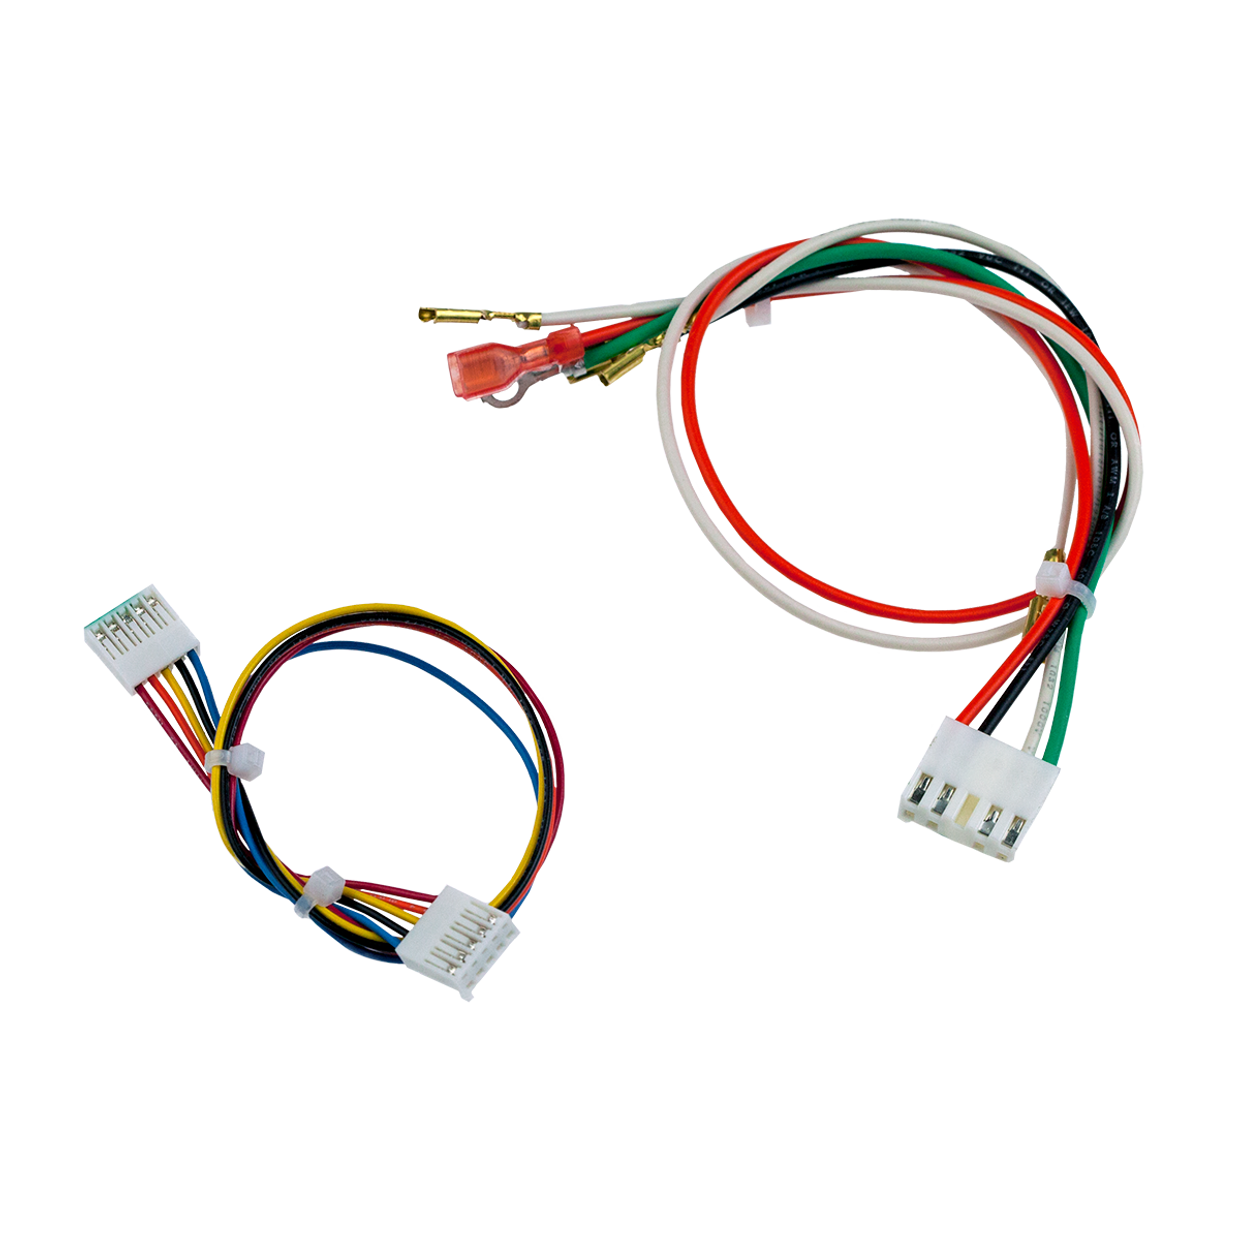 hight resolution of 041d9069 wire harness hero